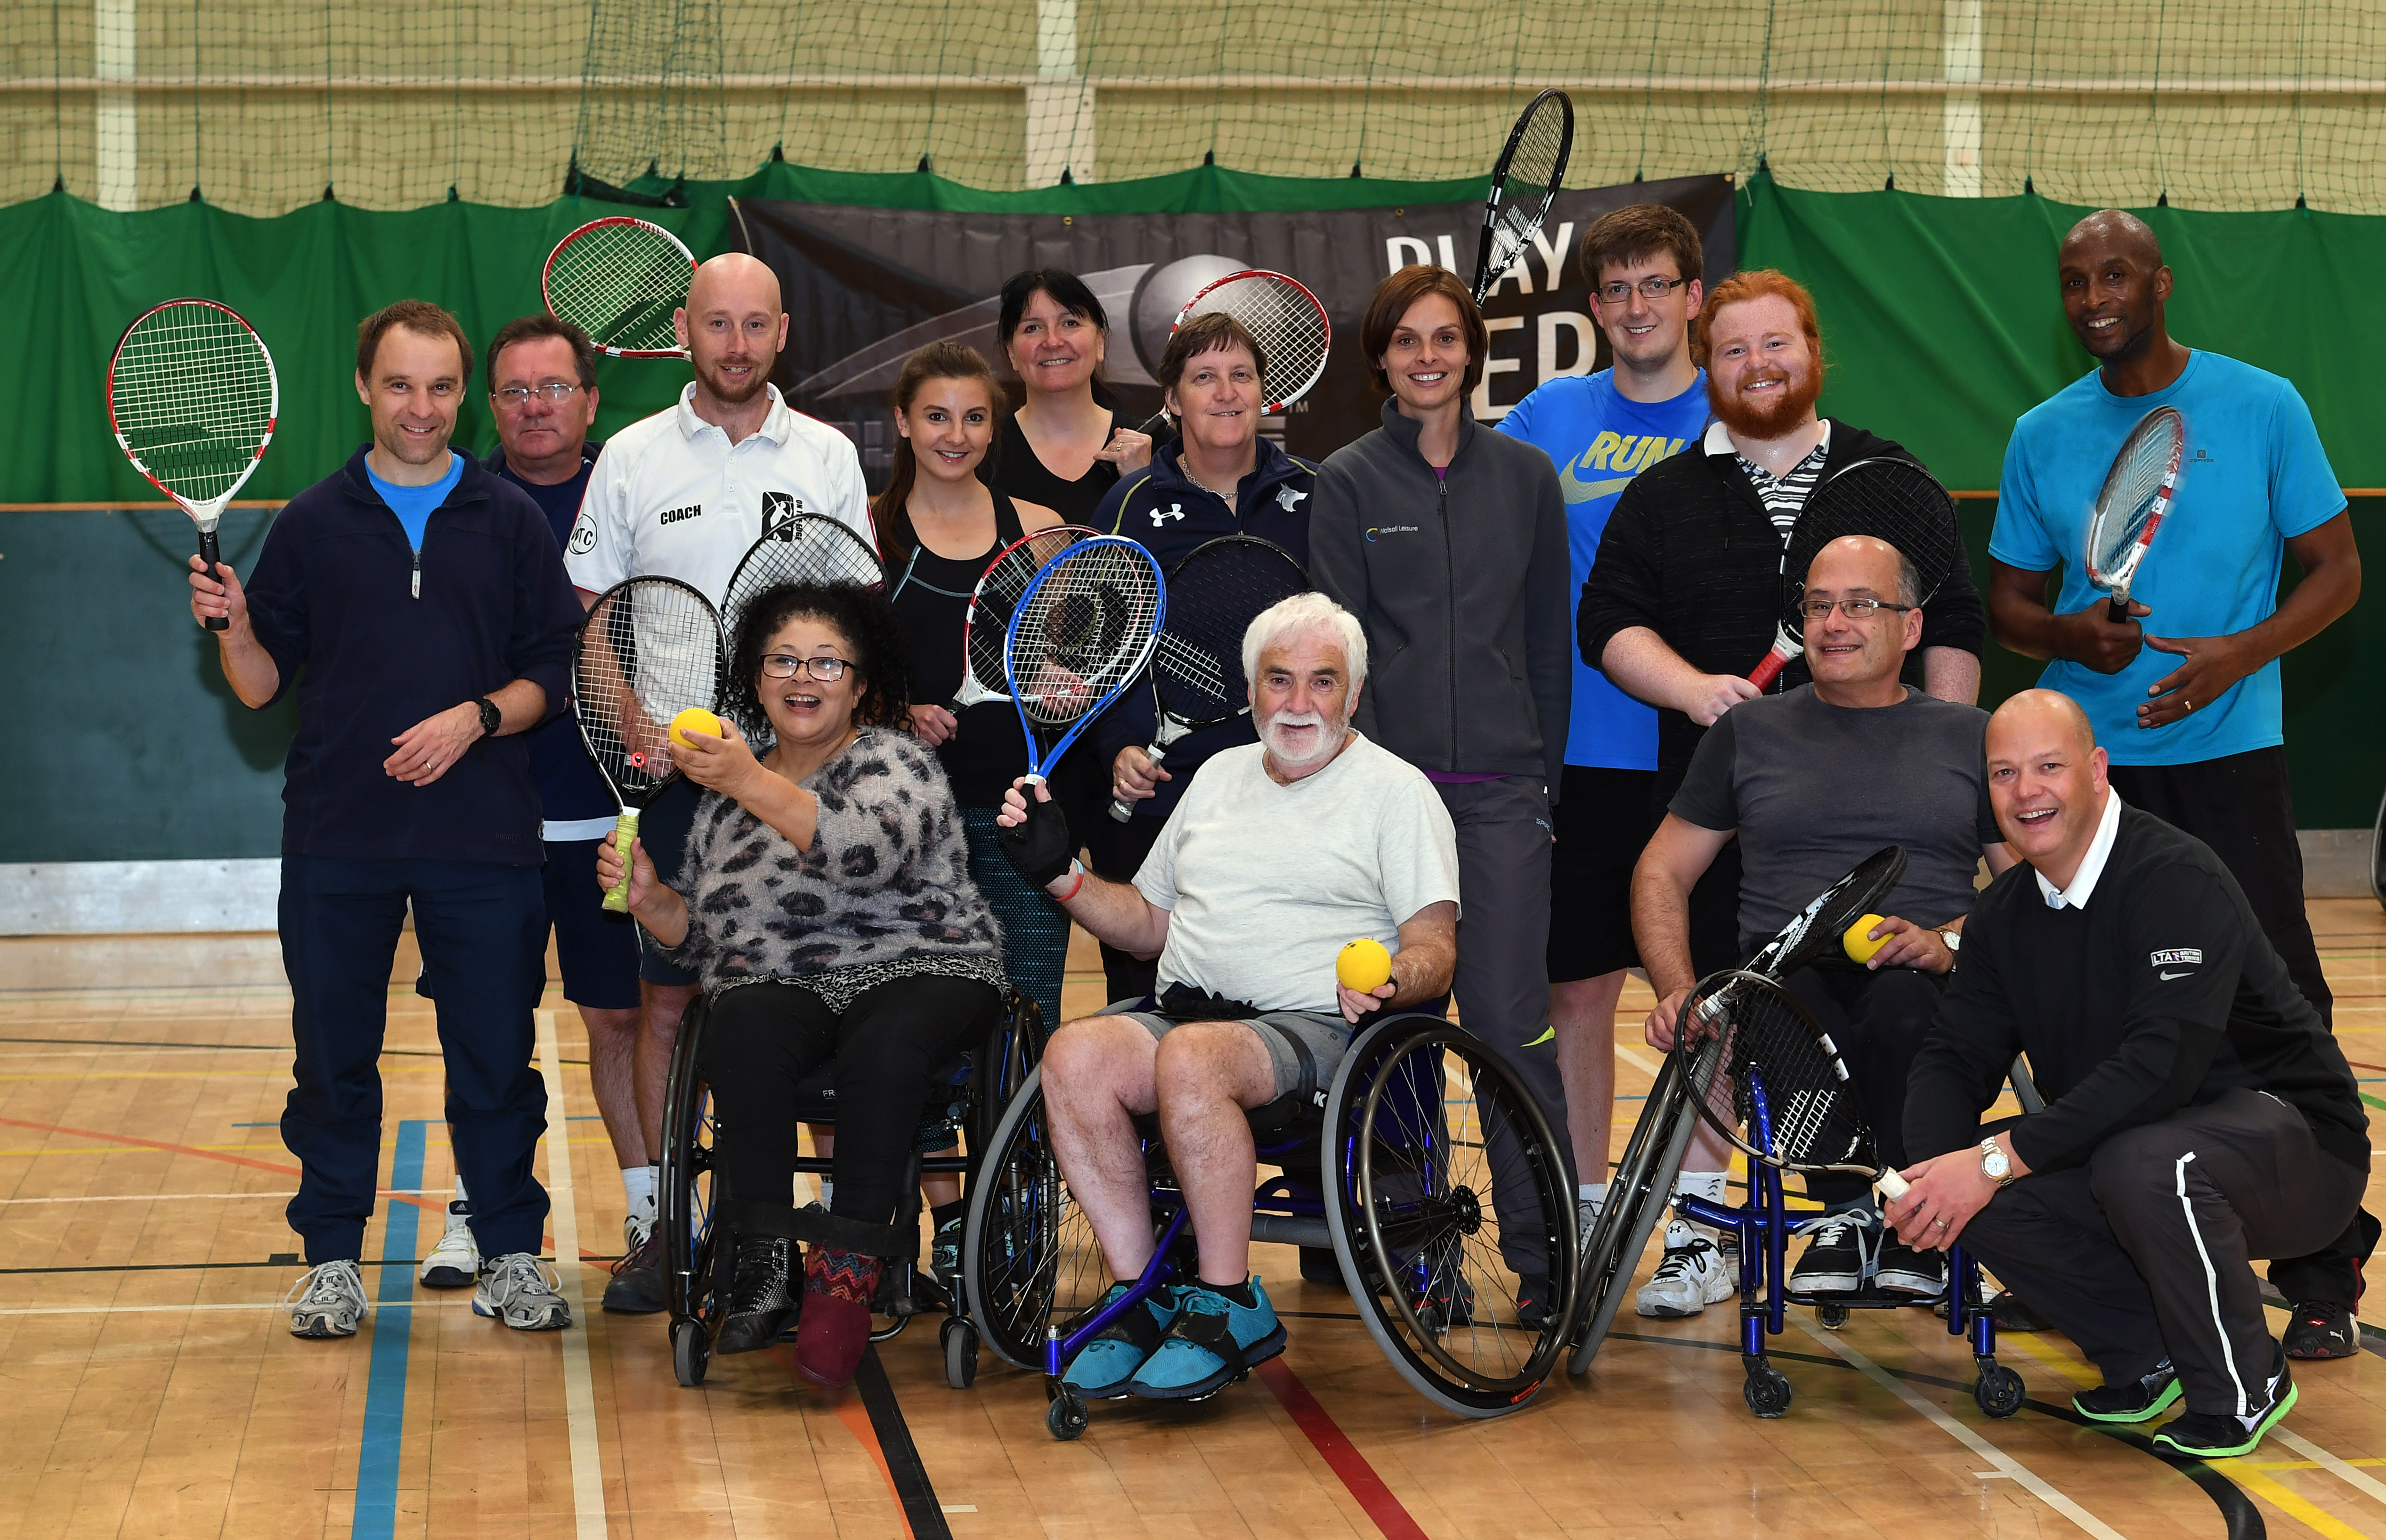 Walsall Man Becomes First Wheelchair Athlete To Take Part In New Tennis Tournament